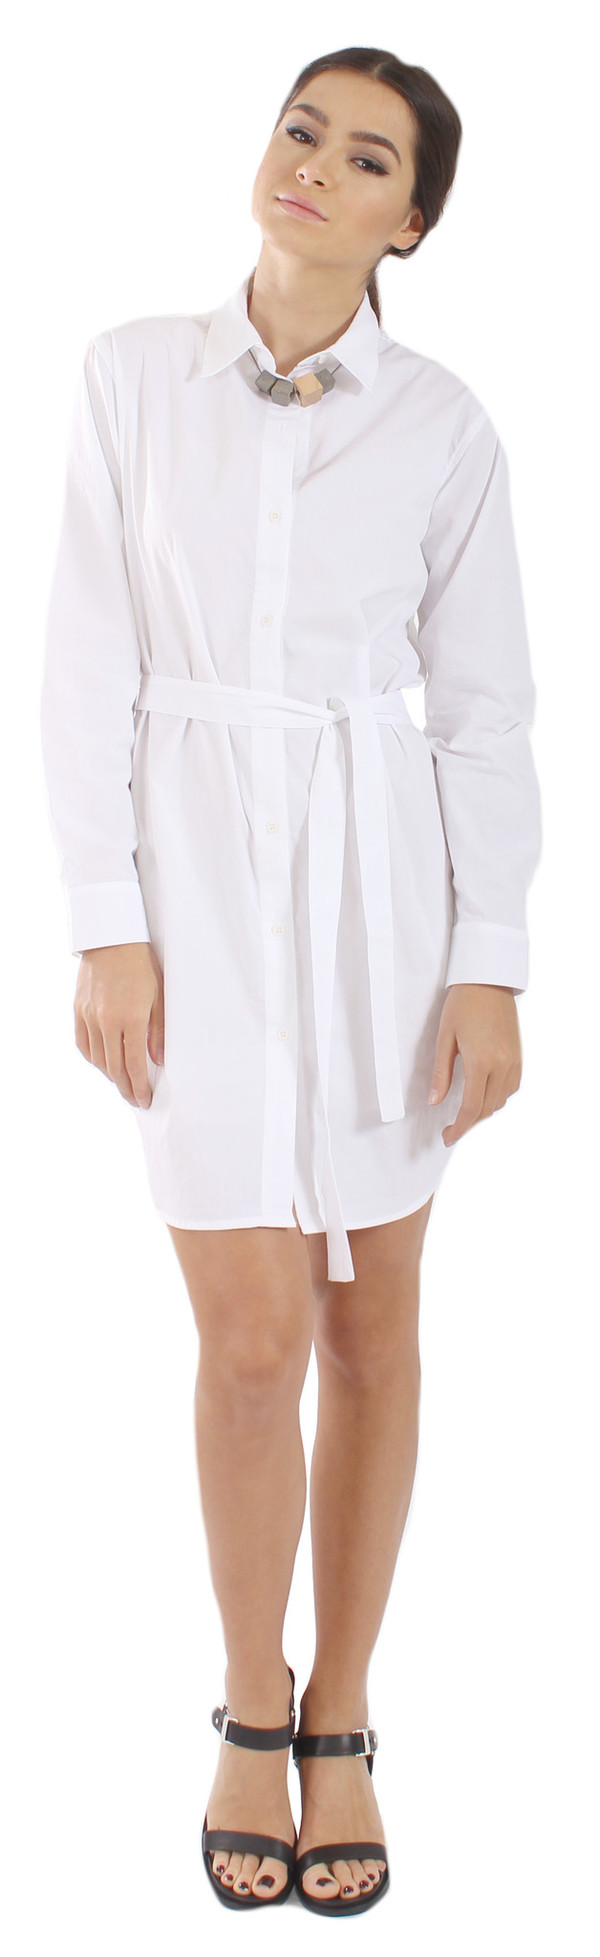 The Lady & The Sailor Button Up Tunic Dress